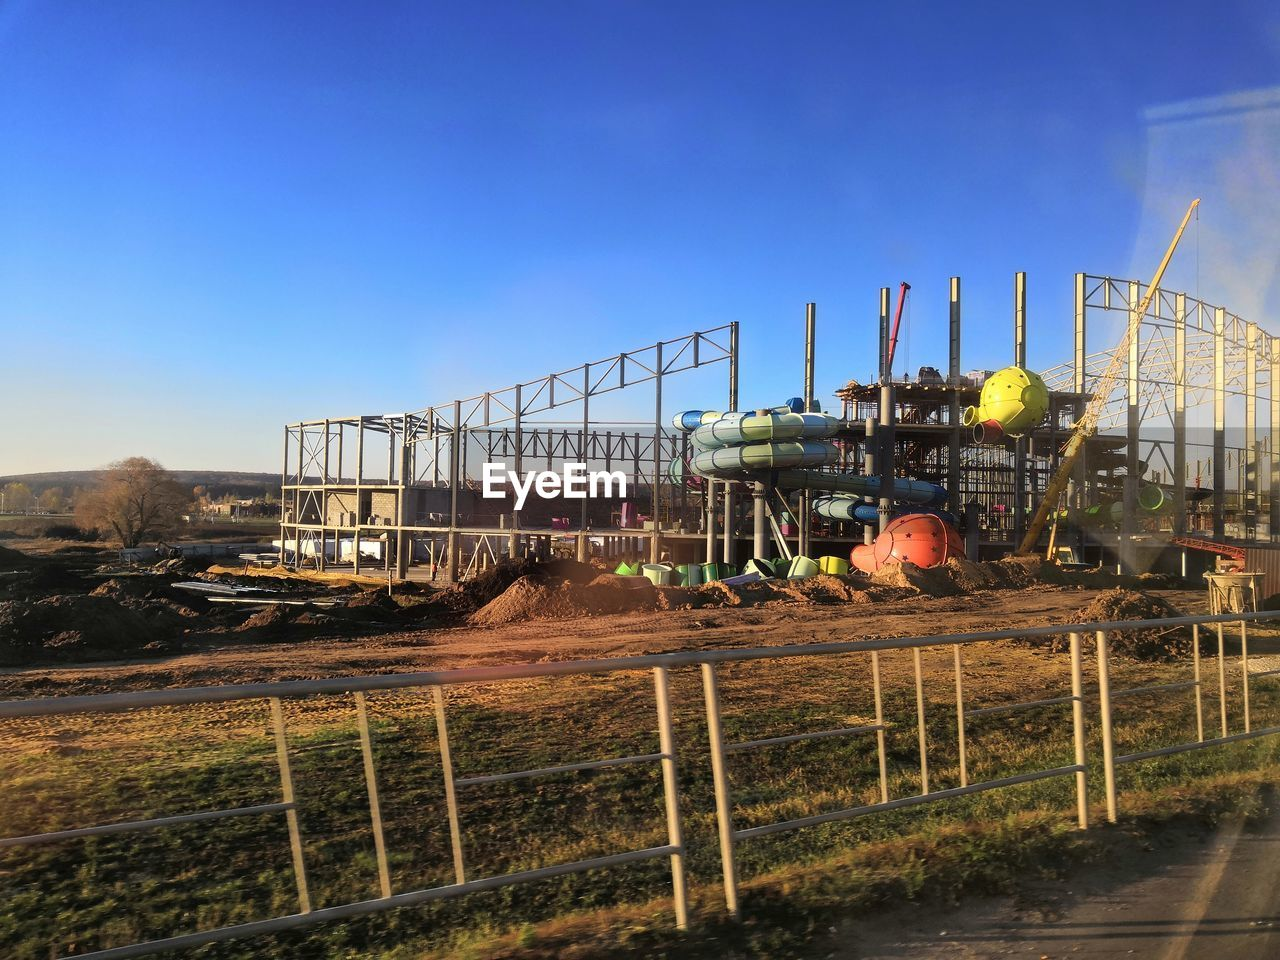 sky, industry, construction industry, nature, construction site, no people, day, clear sky, architecture, machinery, development, blue, outdoors, copy space, fence, built structure, sunlight, factory, incomplete, barrier, industrial equipment, construction equipment